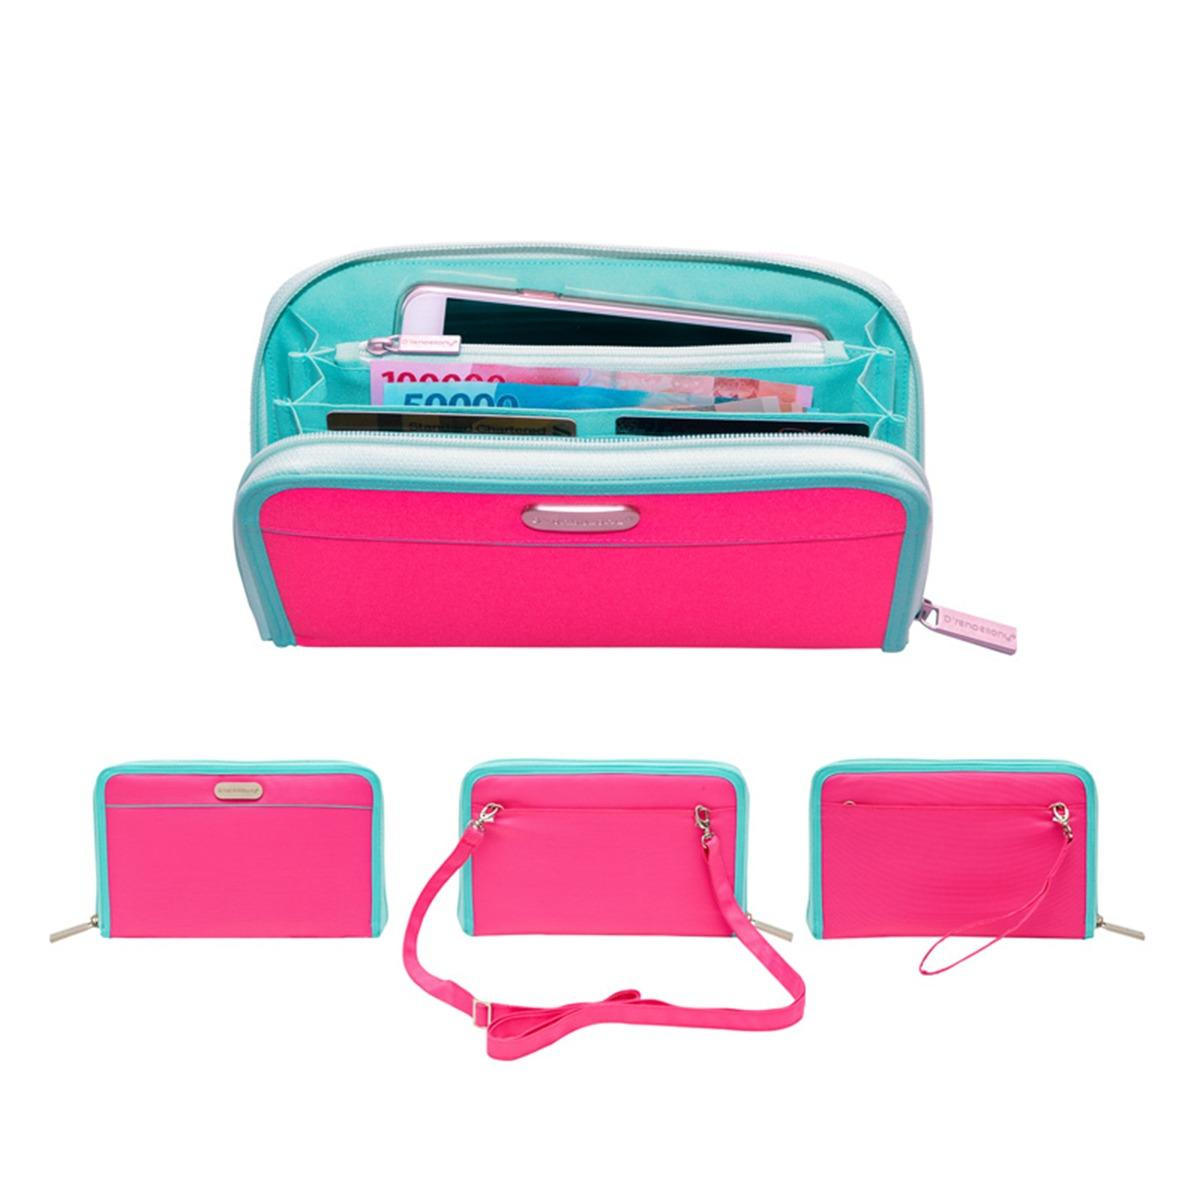 Review Tentang D Renbellony Smartphone Organizer Magenta Turquoise Dompet Hp Dompet Wanita Handphone Pouch Organizer